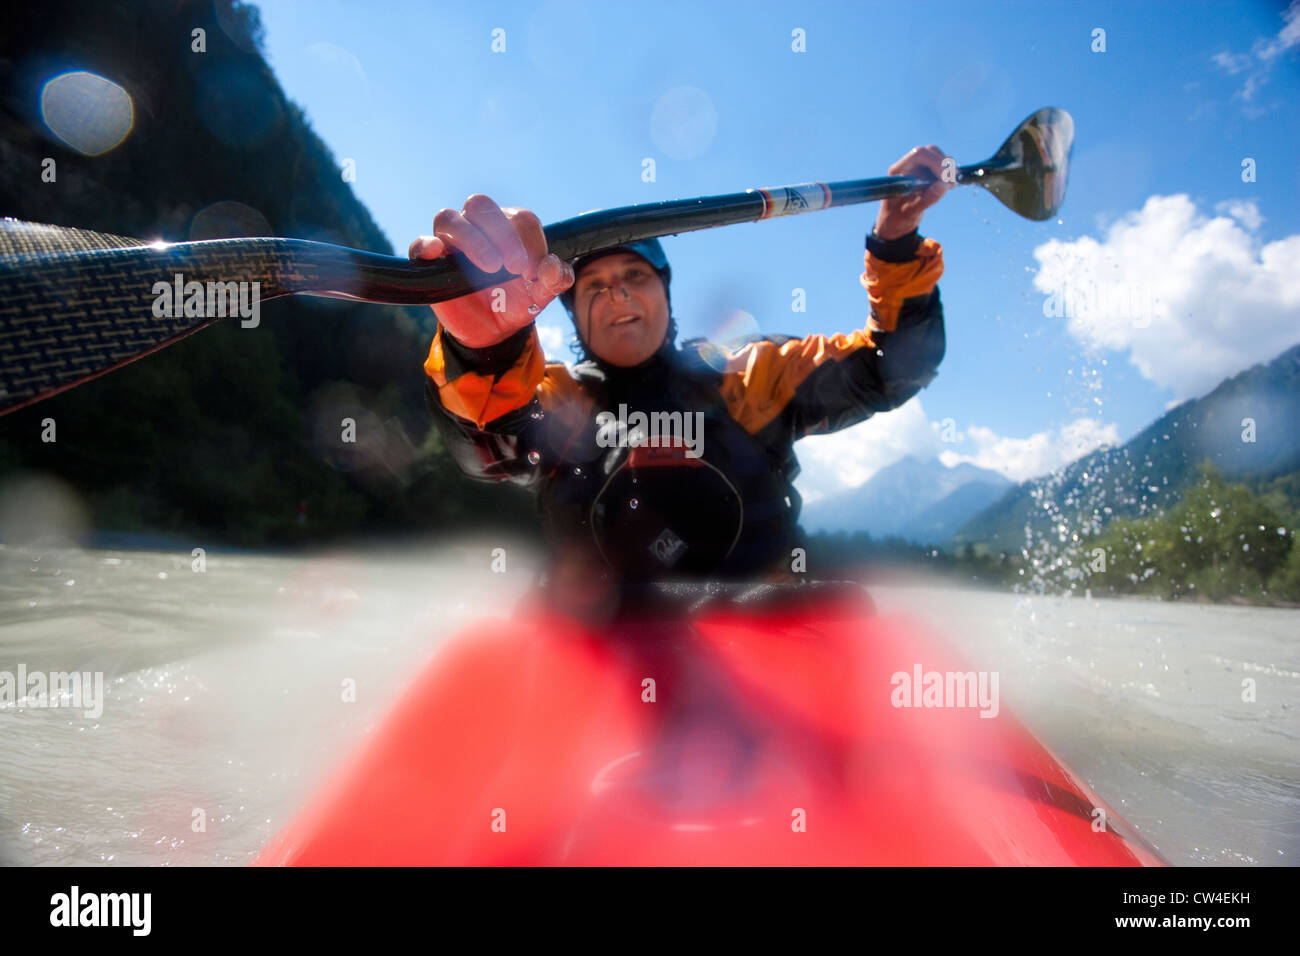 Whitewater kayaker paddling on Inn River near Pfunds, Austria - Stock Image